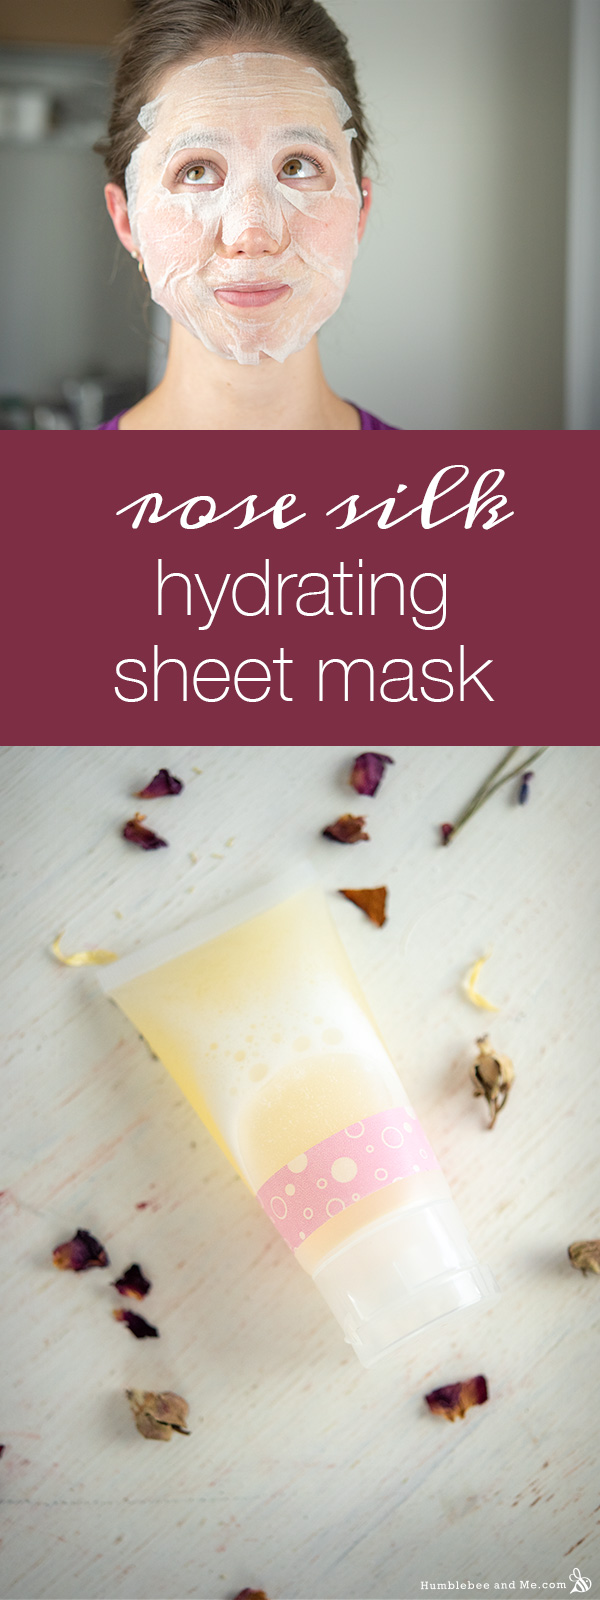 How to Make a Rose Silk Hydrating Sheet Mask